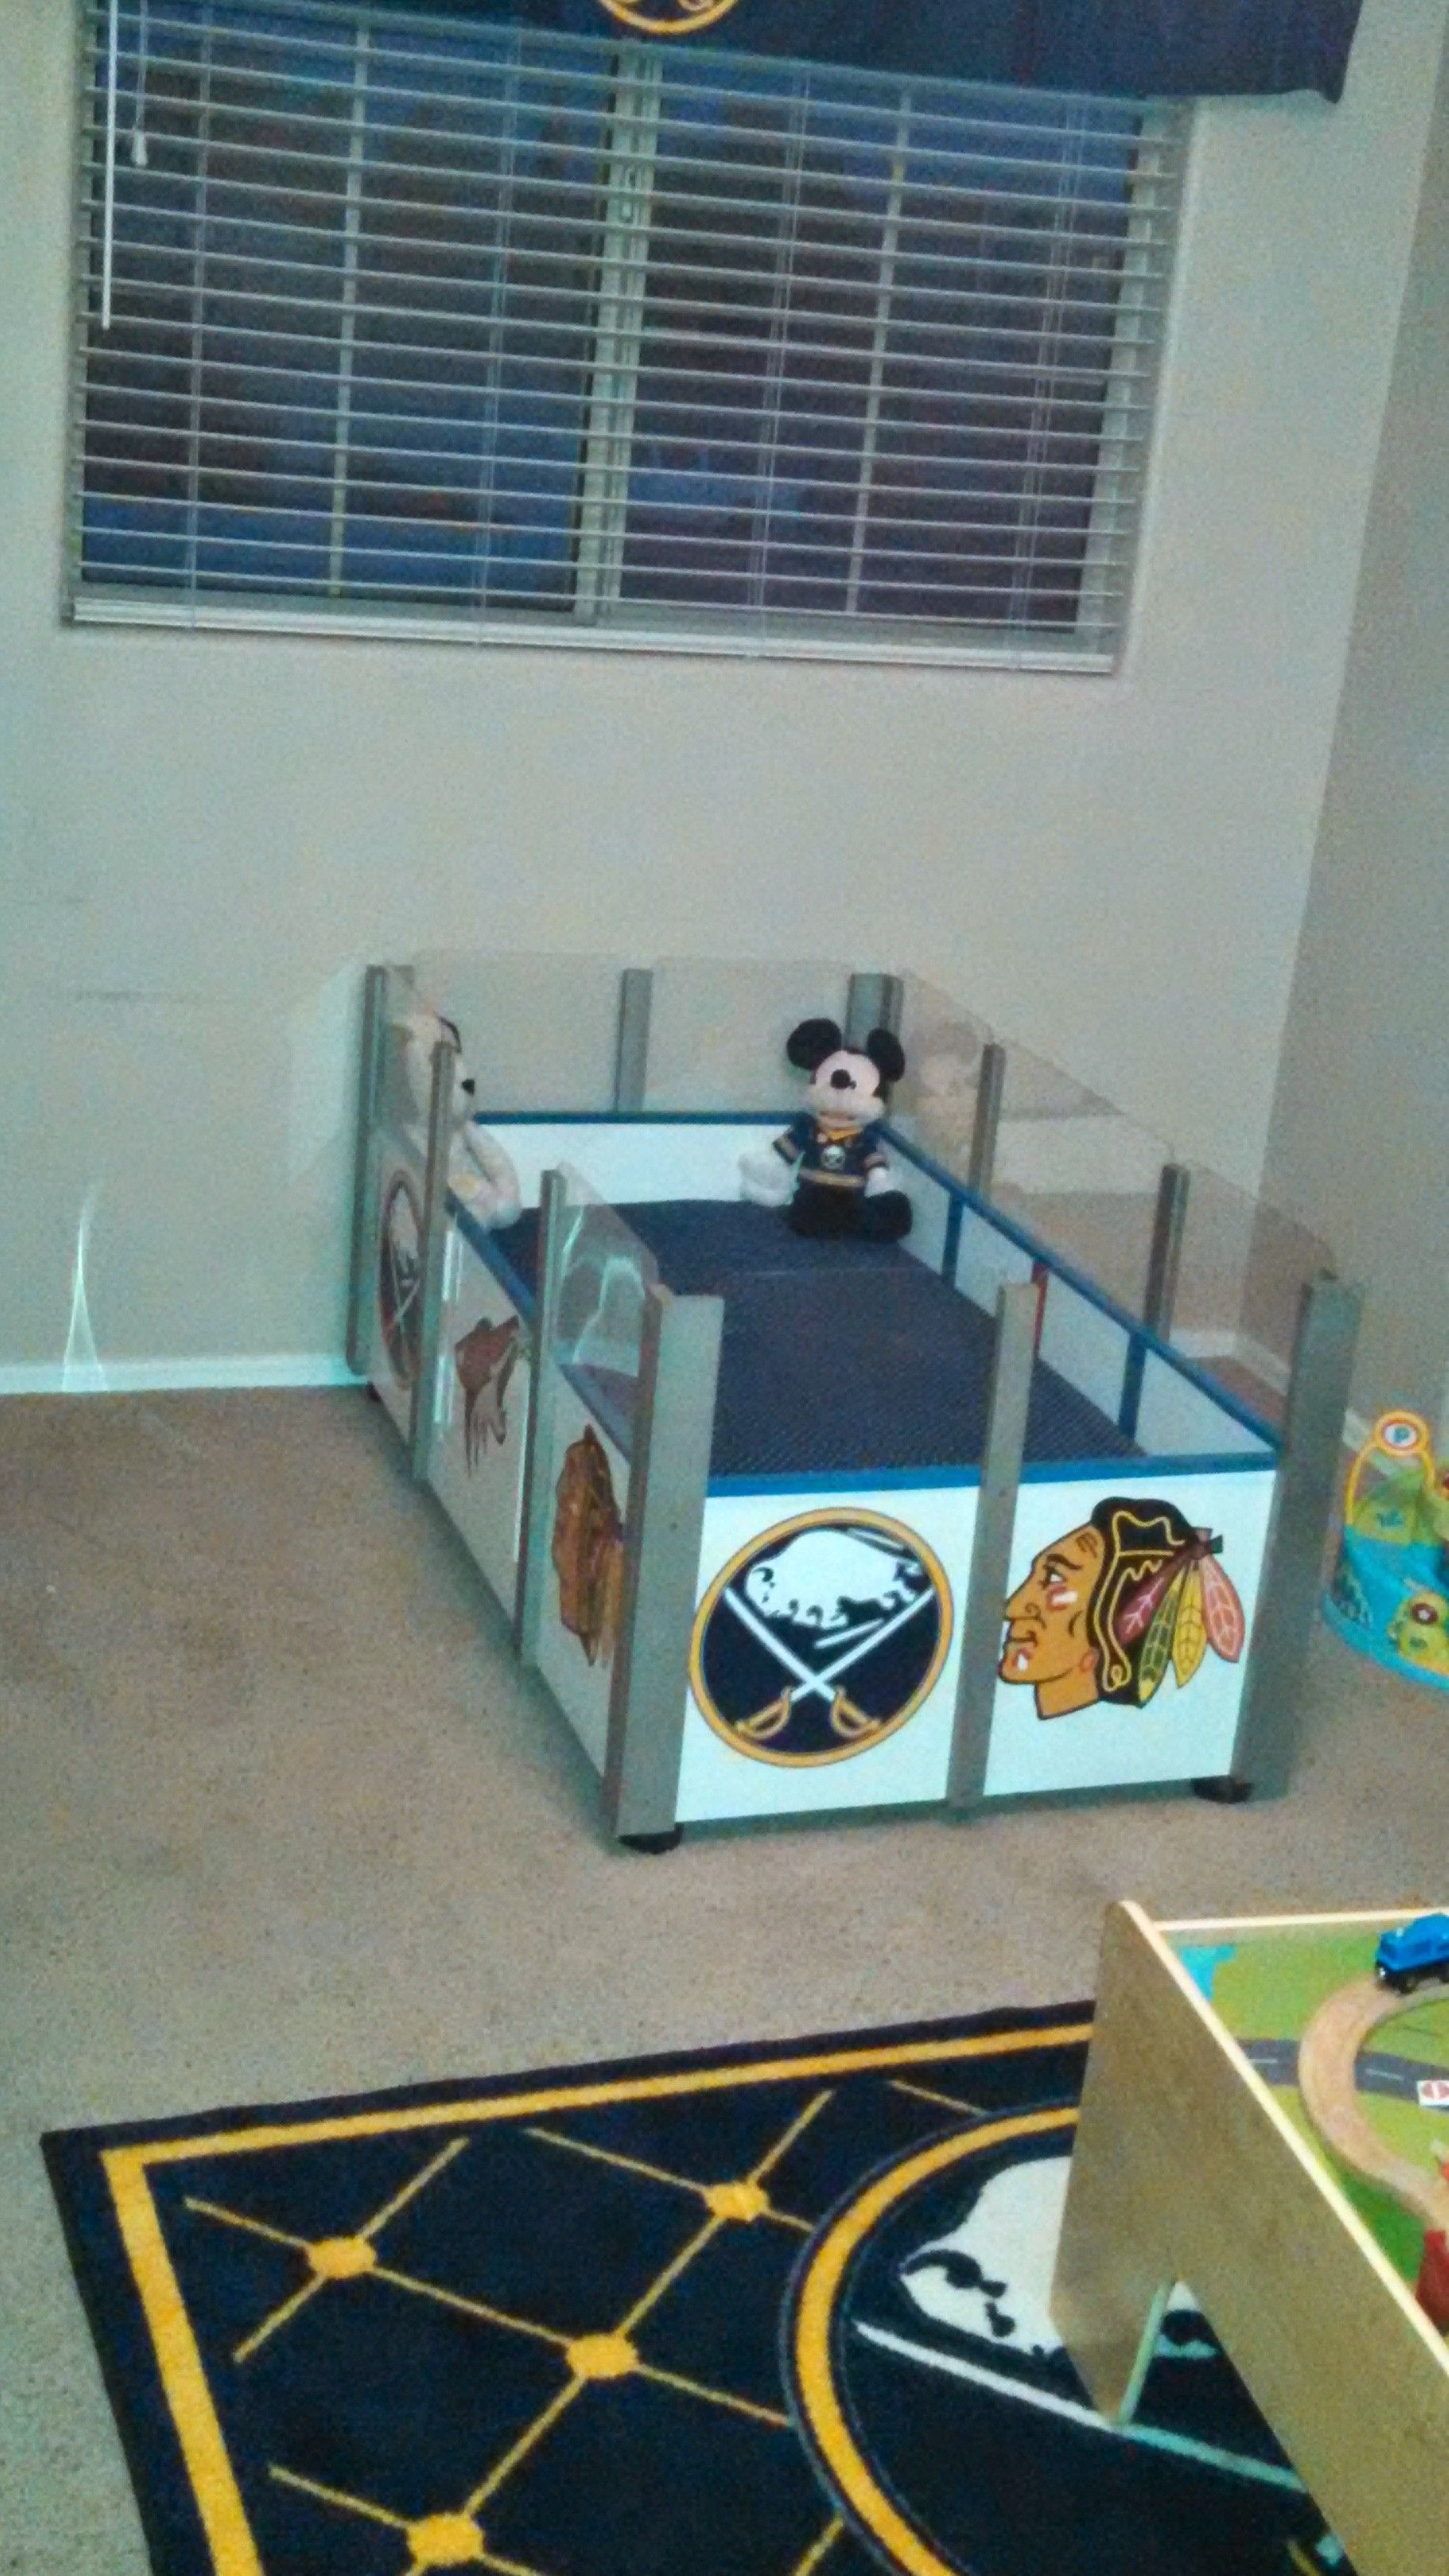 My variation of the hockey rink bed for my little guy